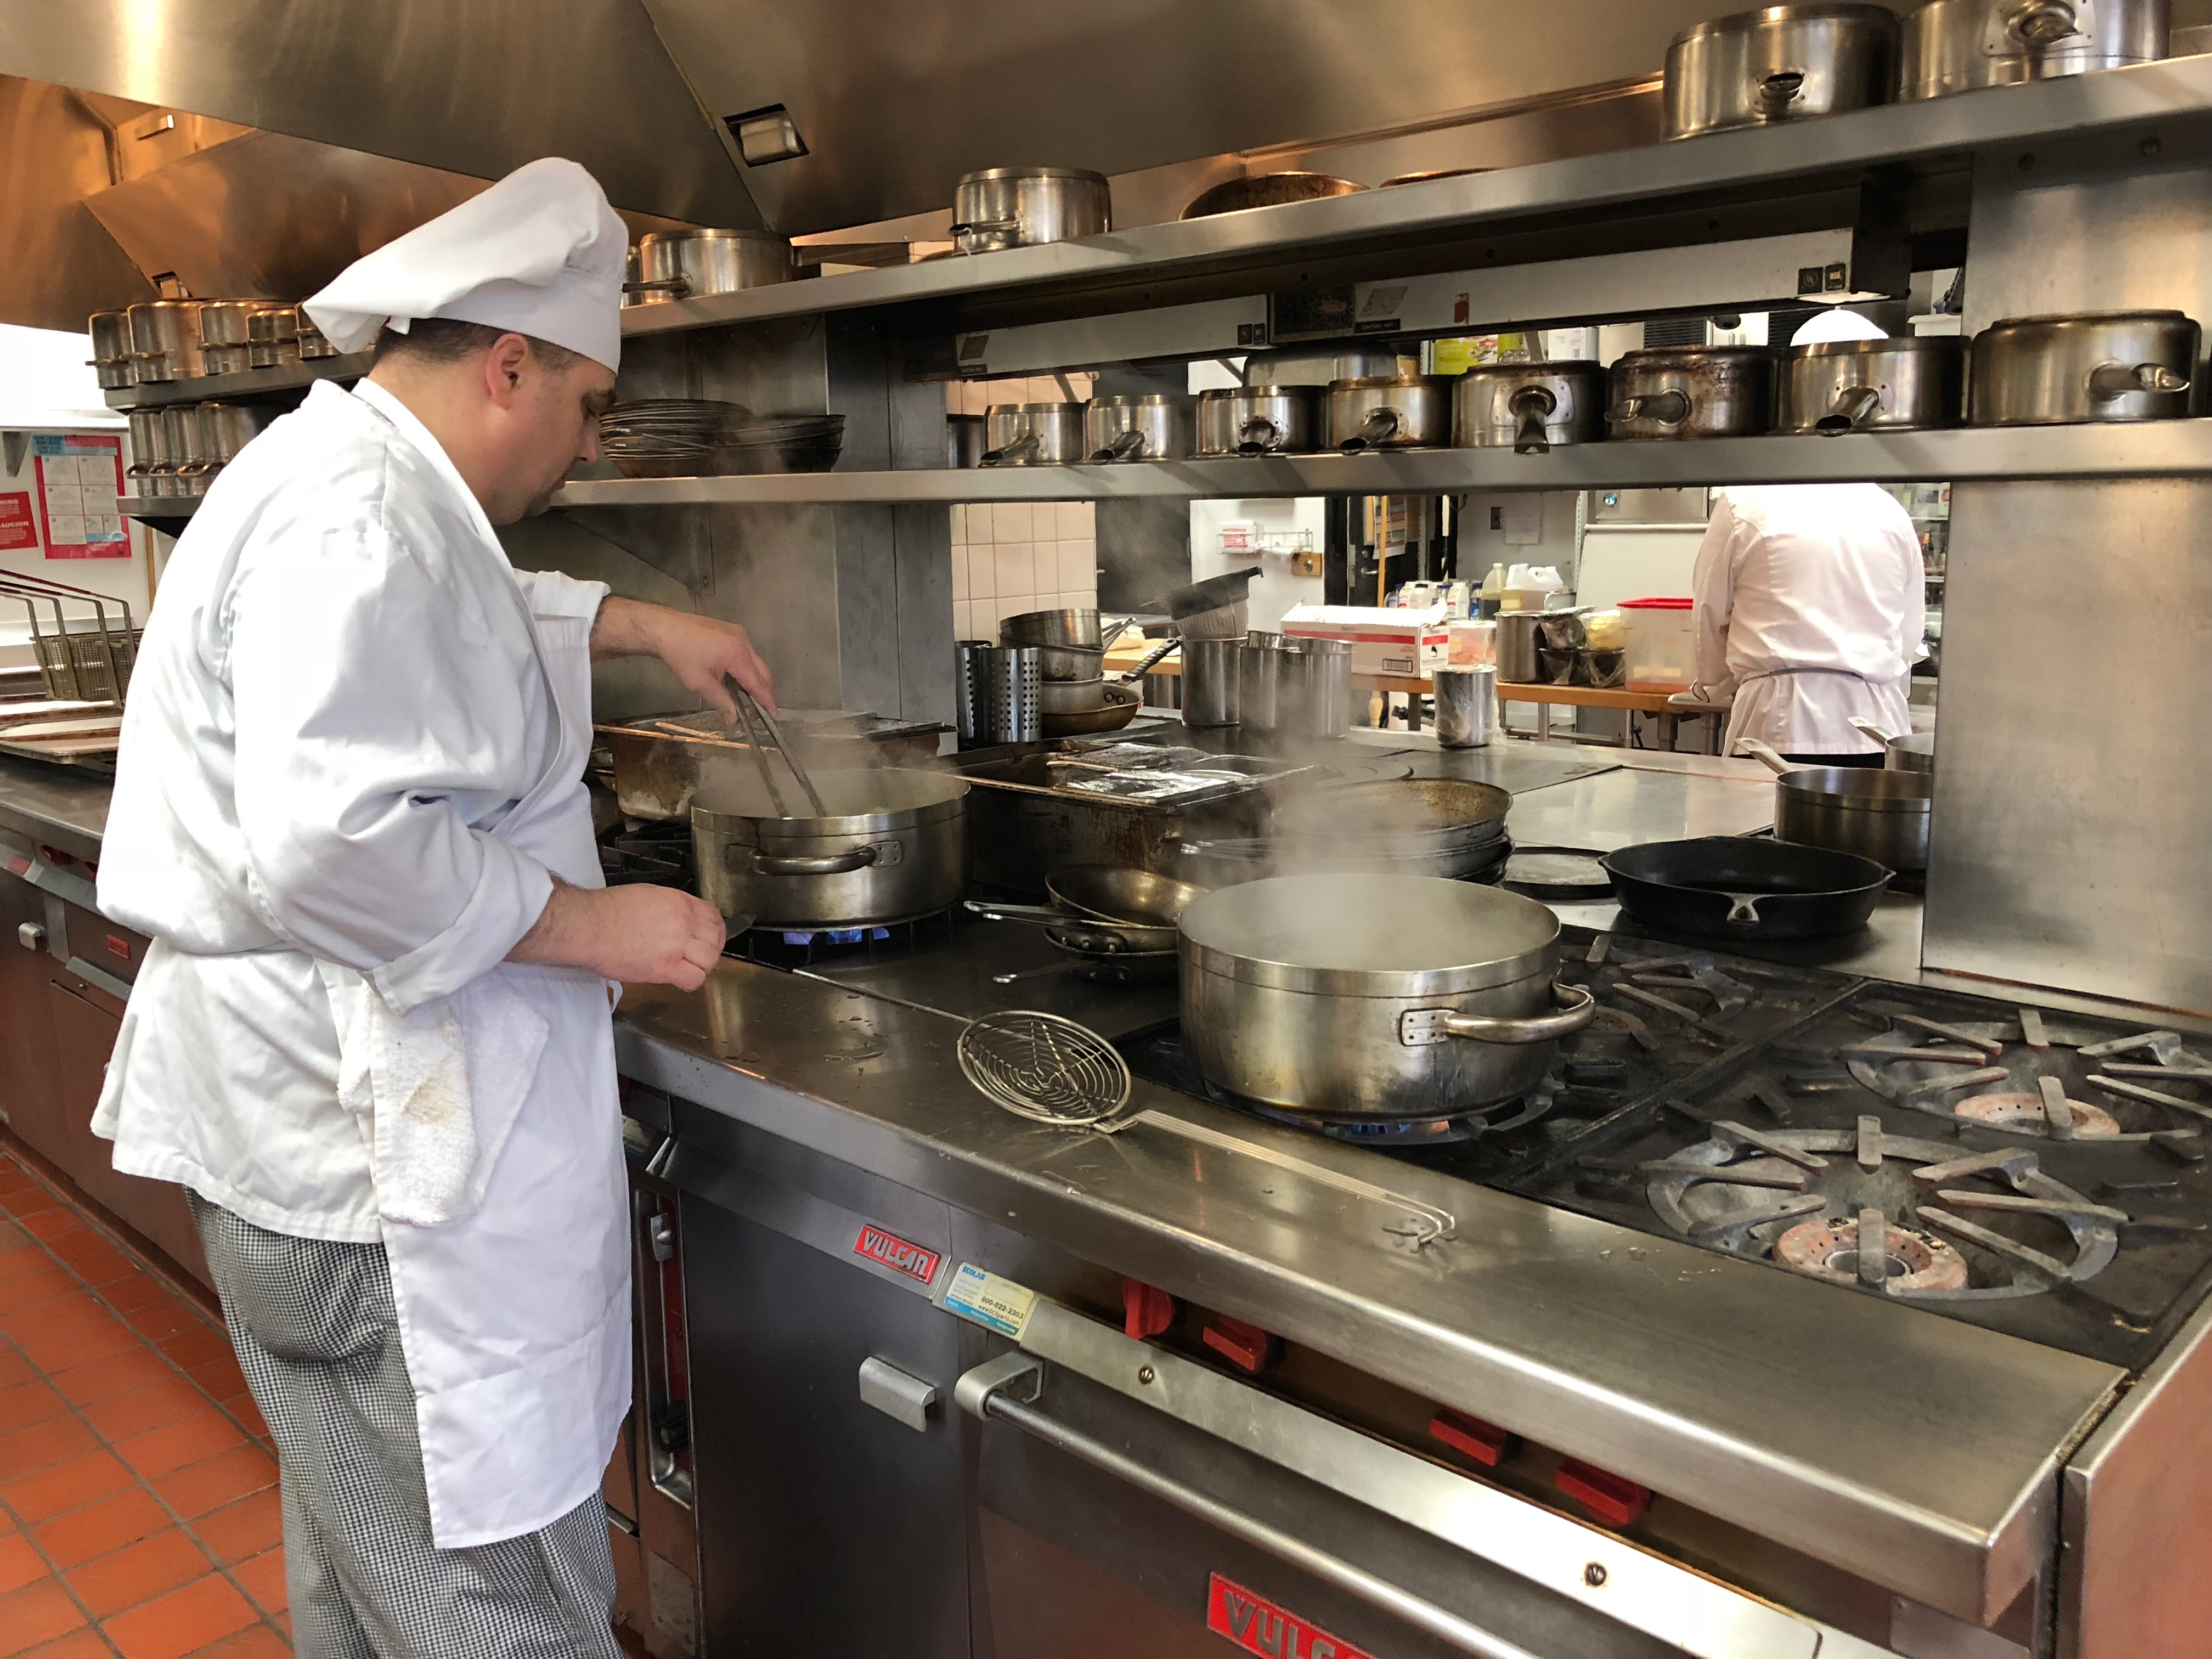 Chef David Wynne is Chef Instructor at Art Institute of Seattle's Portfolio Restaurant. He runs the kitchen here with military like precision - and a combination of toughness and TLC. Students get the opportunity to learn all about culinary arts from the kitchen to the restaurant. (Seattle Refined)<p></p><p></p>